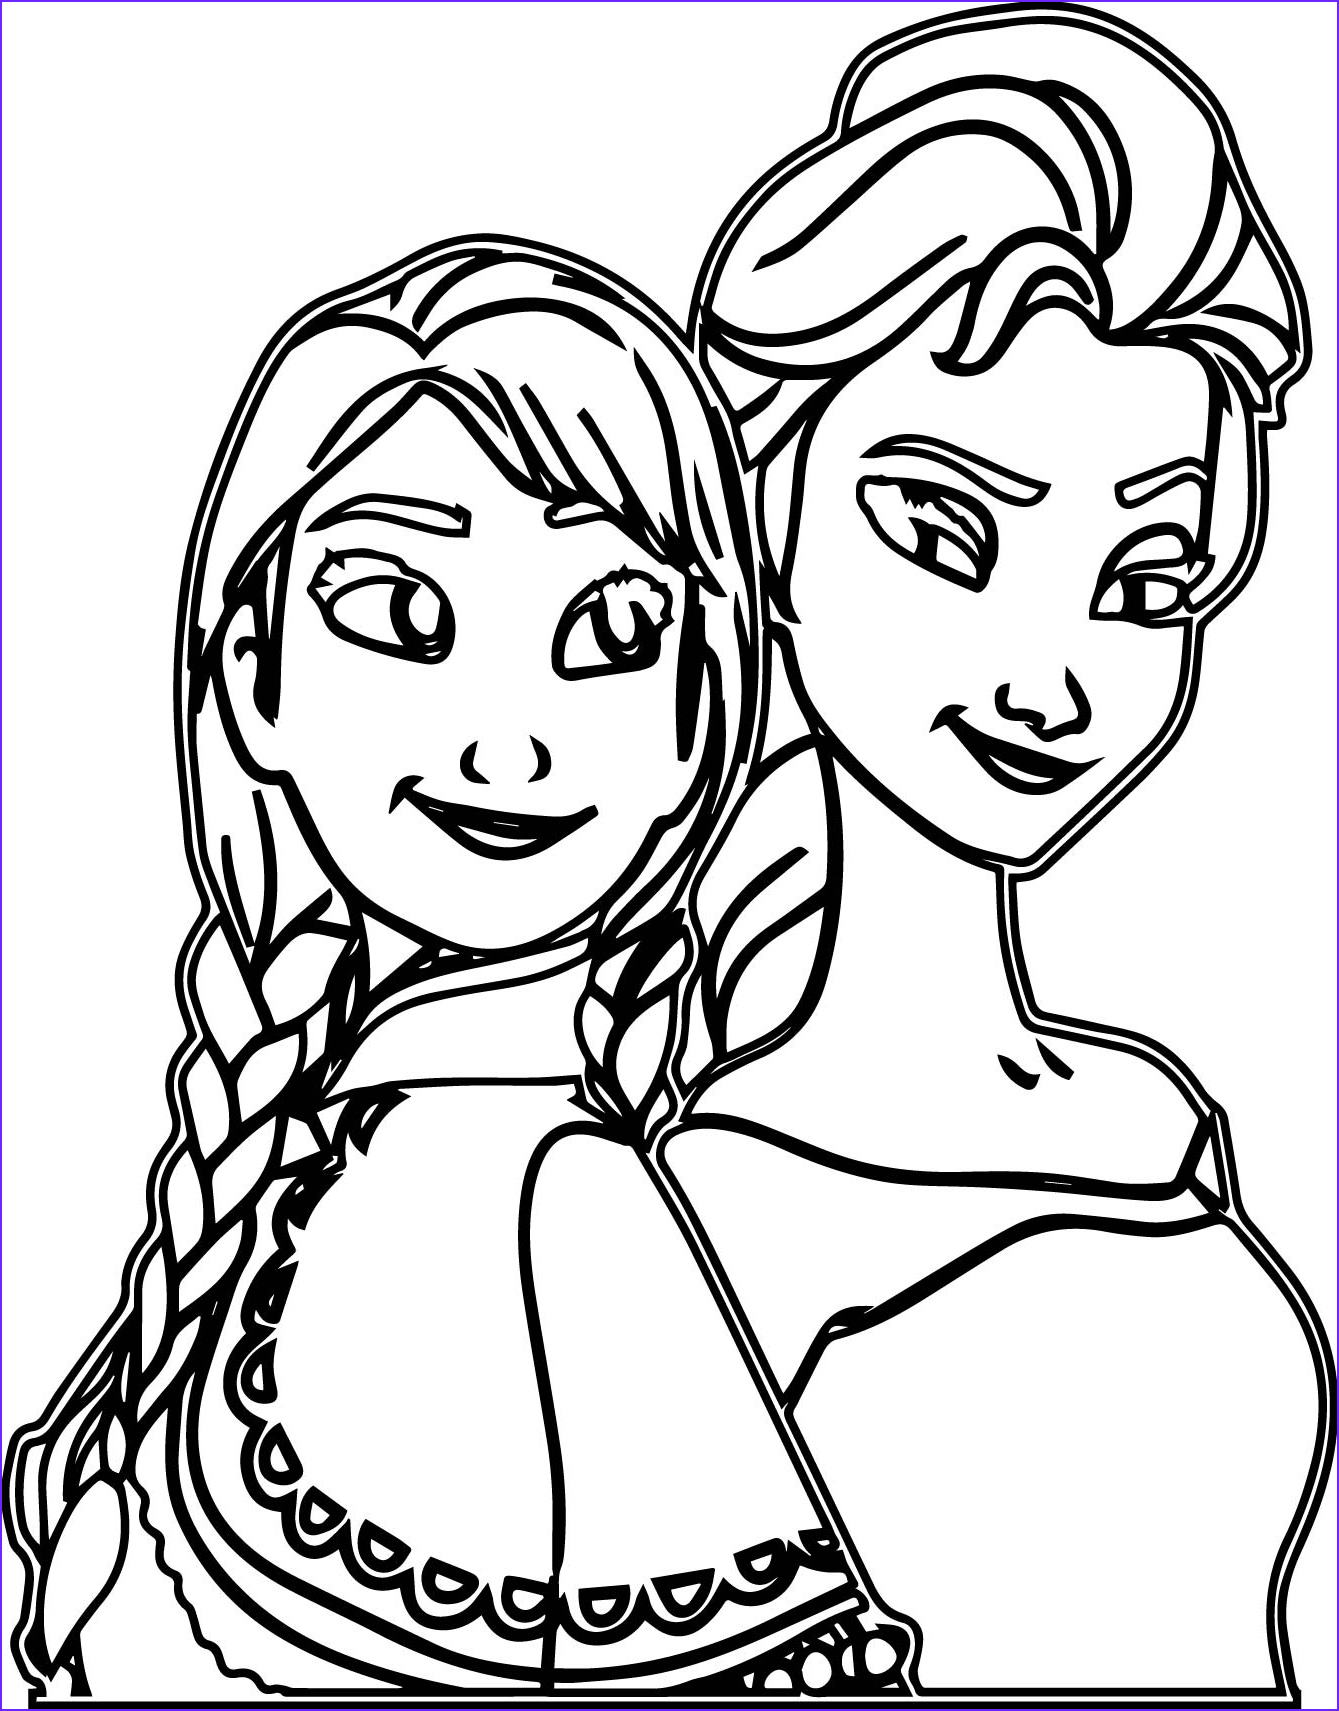 Elsa and Anna Coloring New Photos Elsa and Anna forever Coloring Page